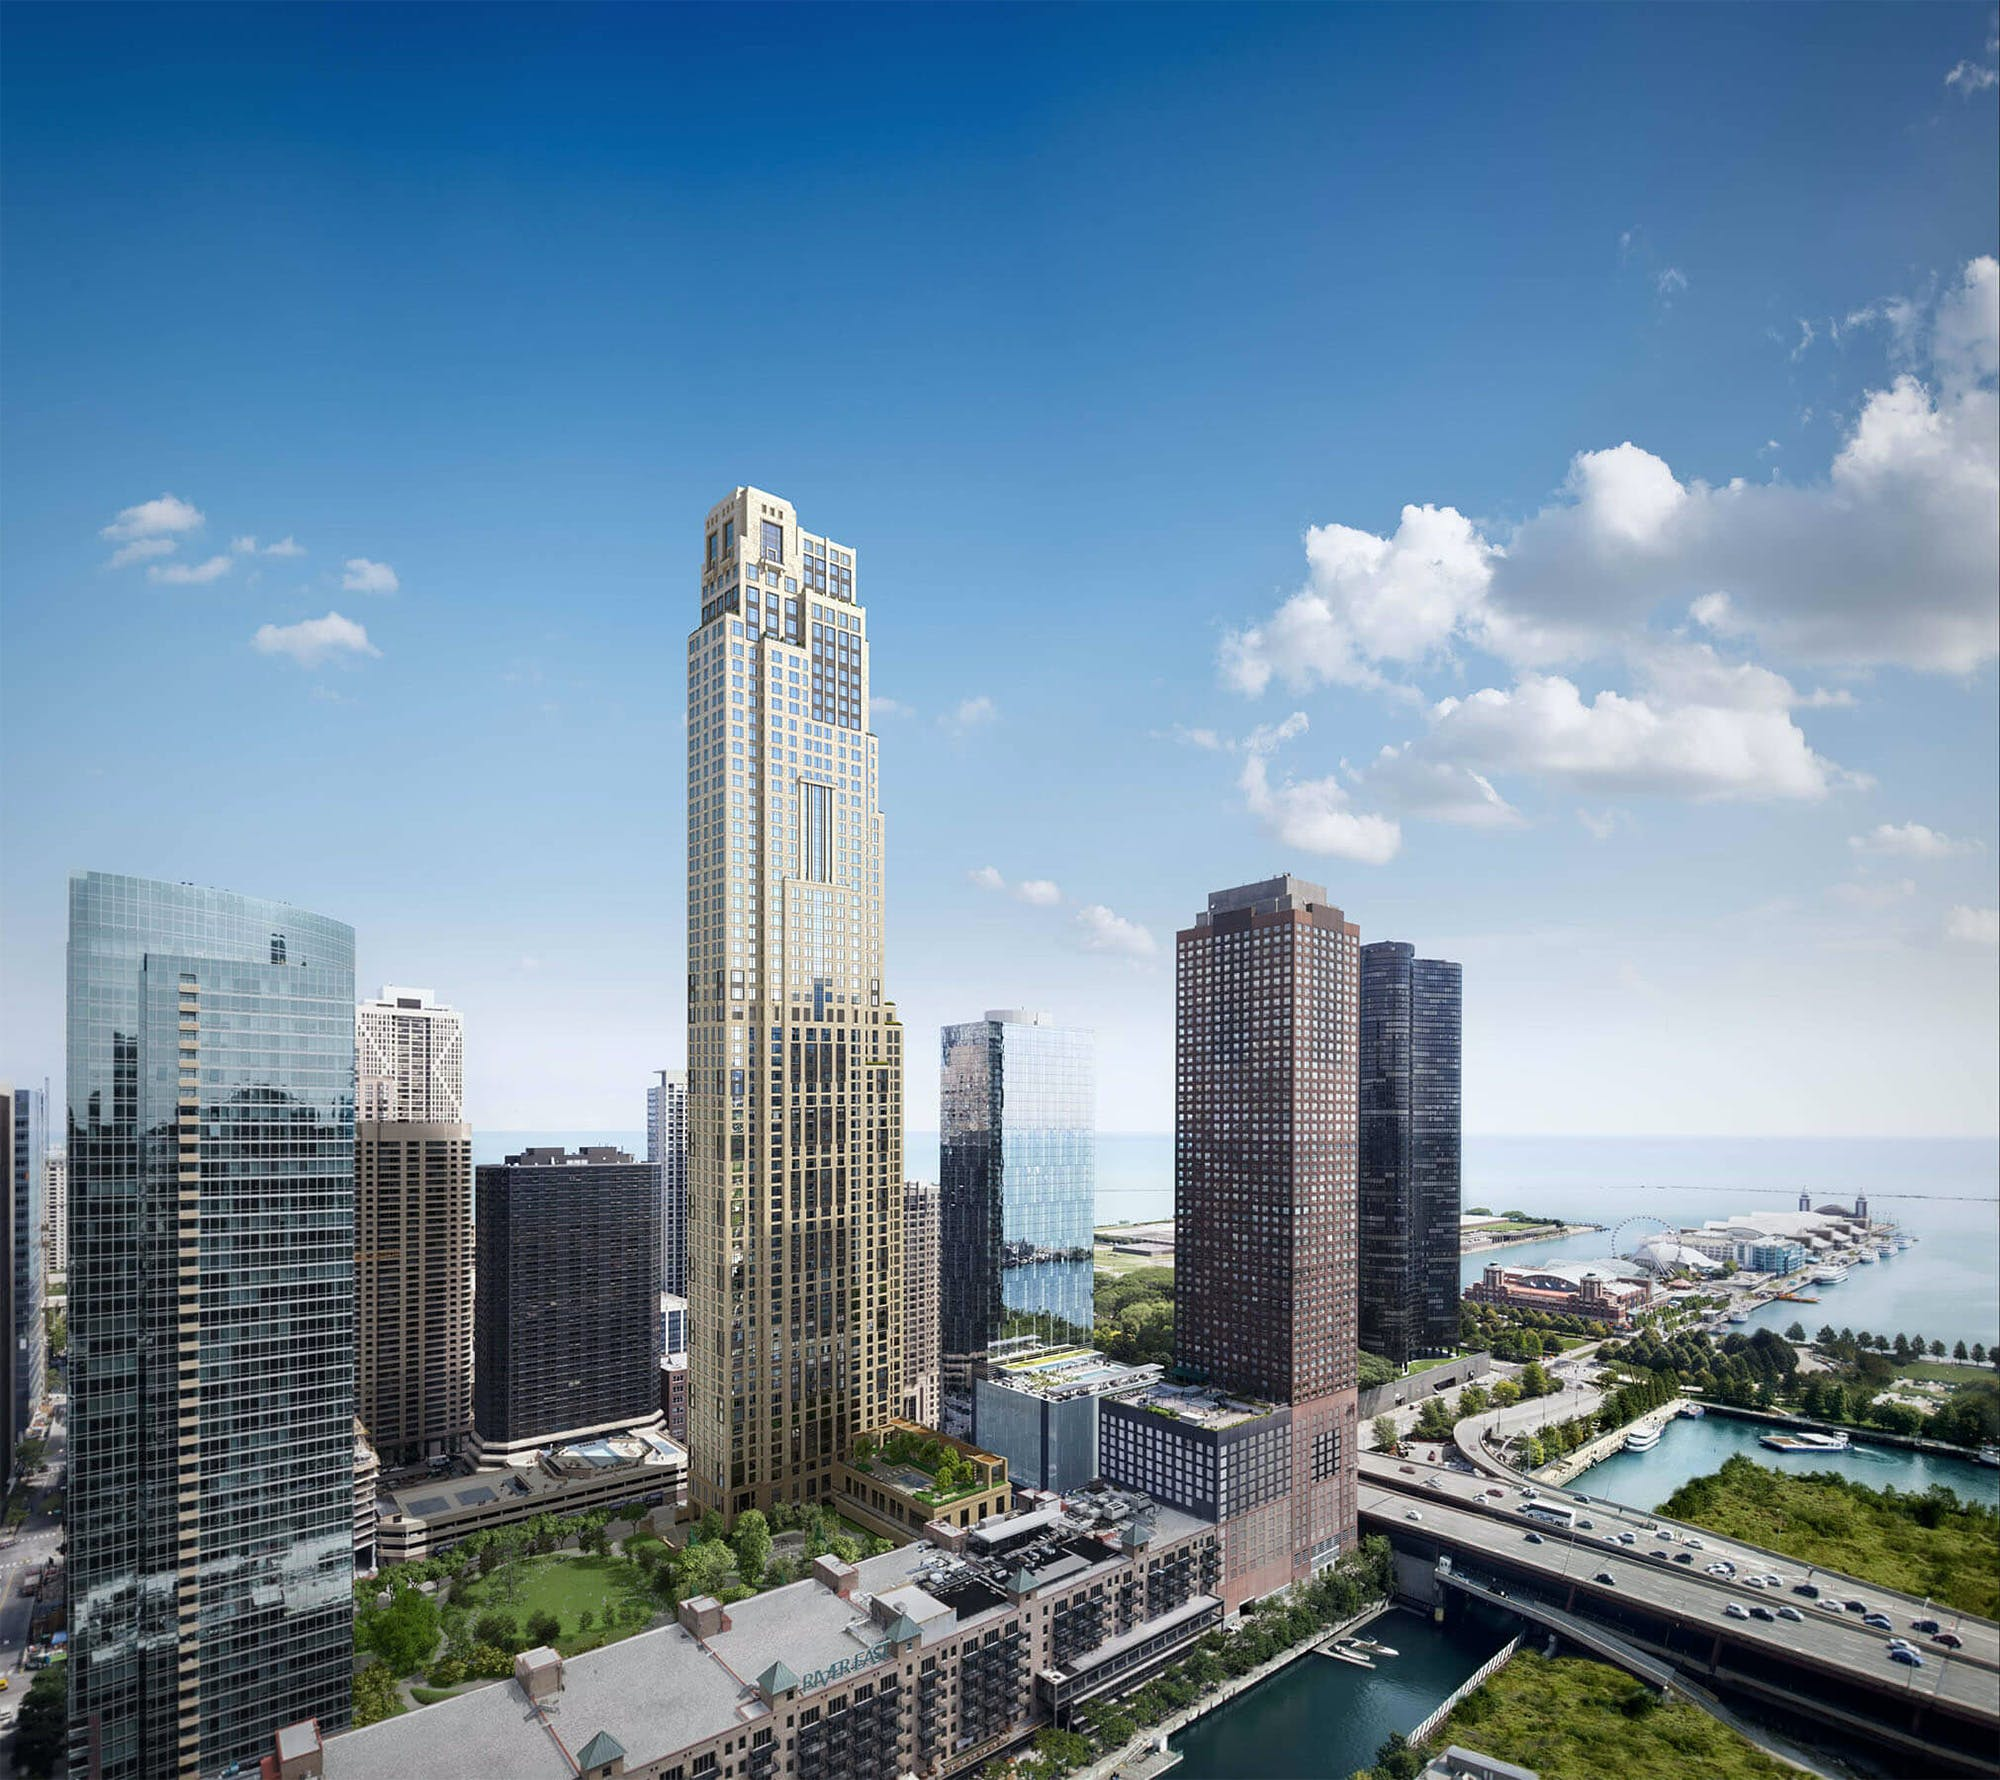 Robert A.M. Stern's first Chicago tower nears completion